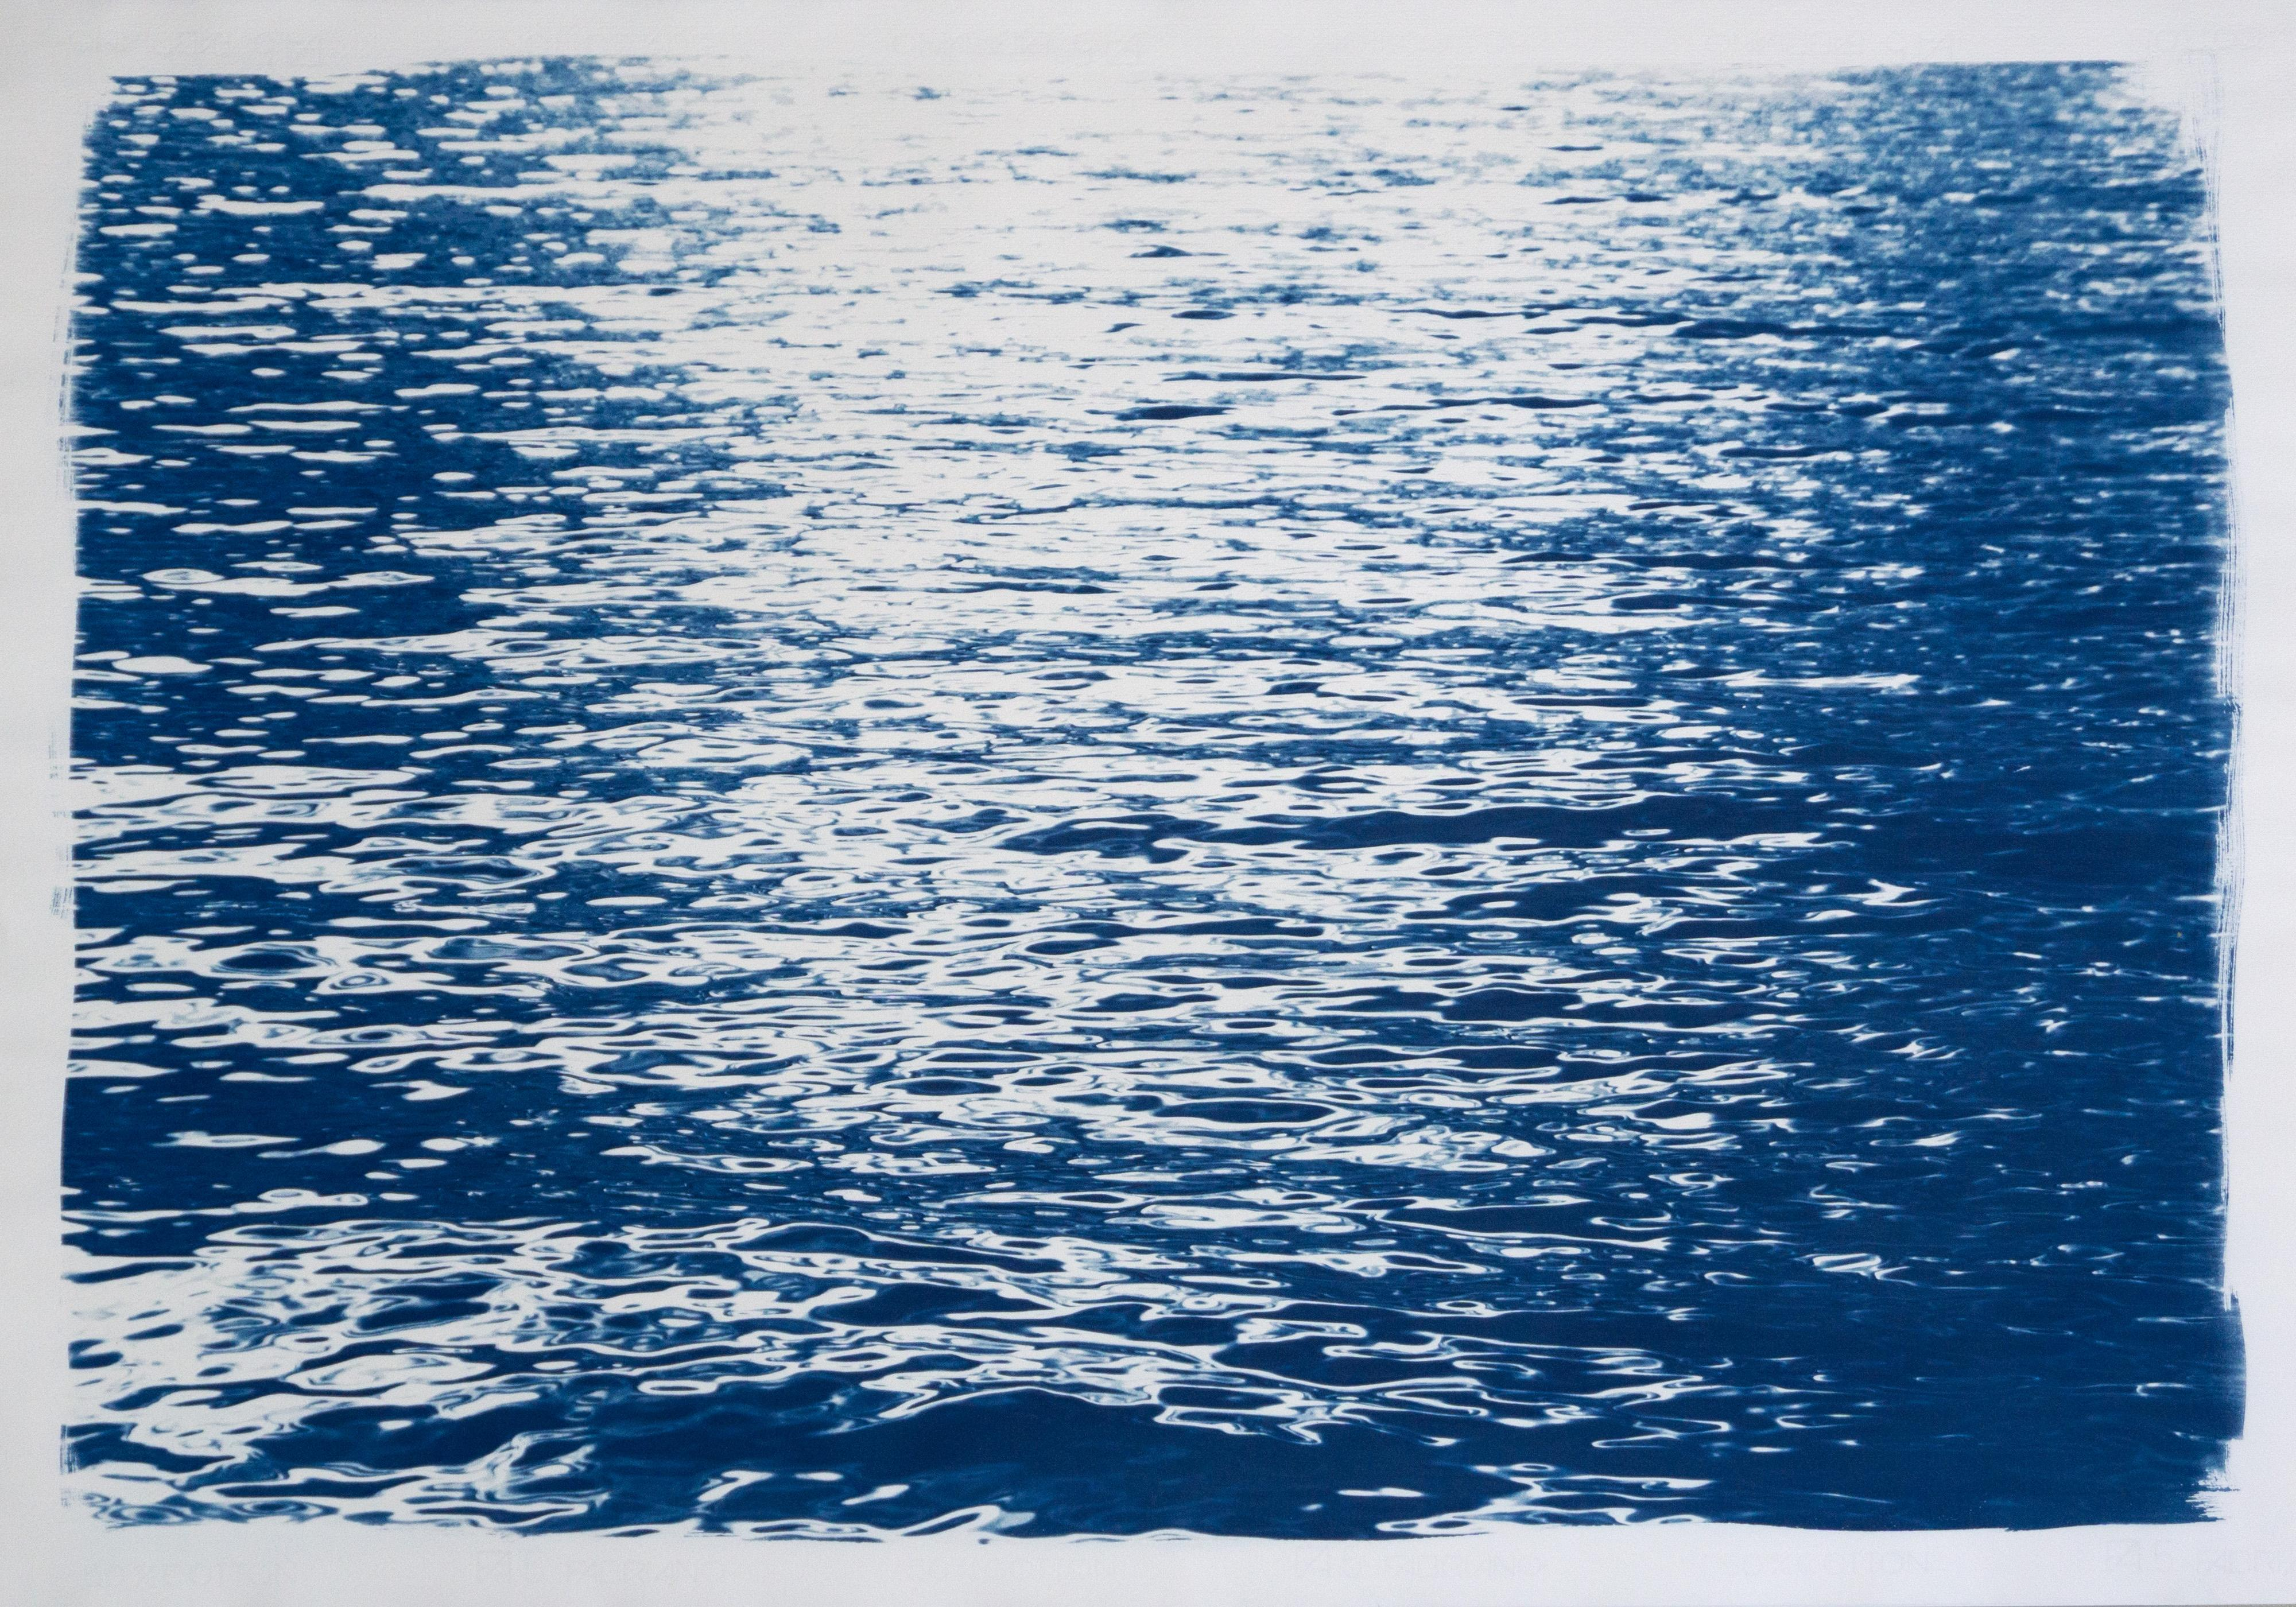 Abstract Ripples Under Moonlight, Contemporary Cyanotype of Water Reflections